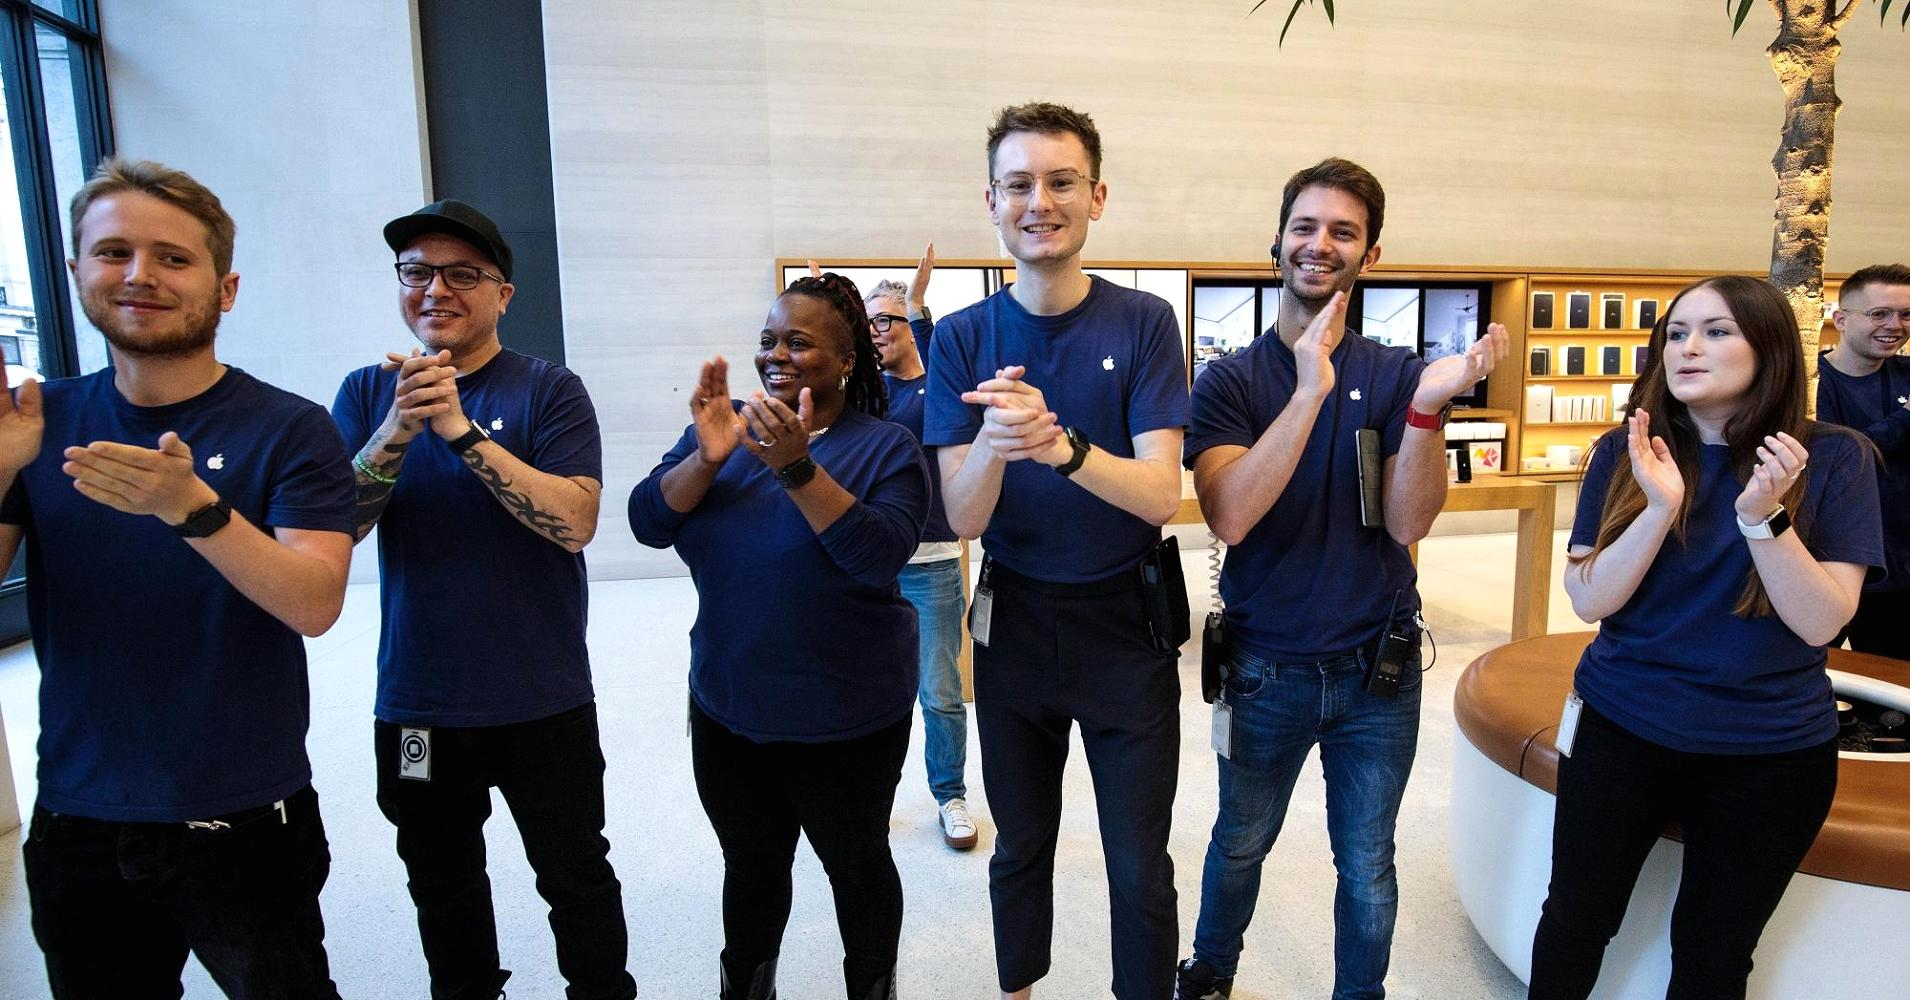 Clapping at Apple Store CNBC